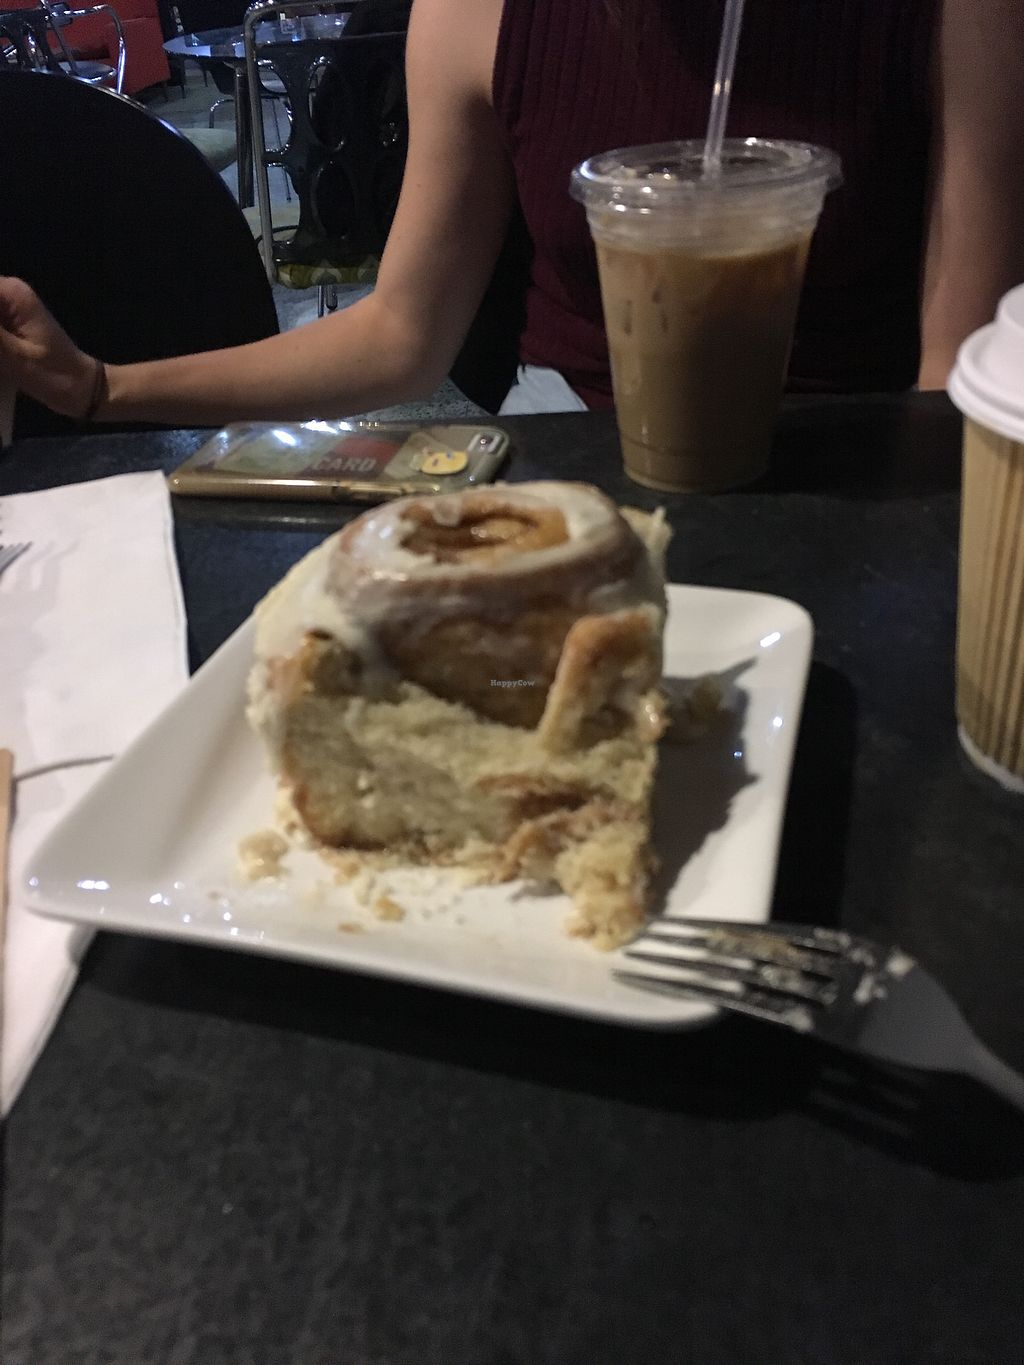 "Photo of Black Hole Coffee House  by <a href=""/members/profile/ChristineLee"">ChristineLee</a> <br/>sinfull bakery cinnamon rolls <br/> August 8, 2017  - <a href='/contact/abuse/image/80432/290274'>Report</a>"